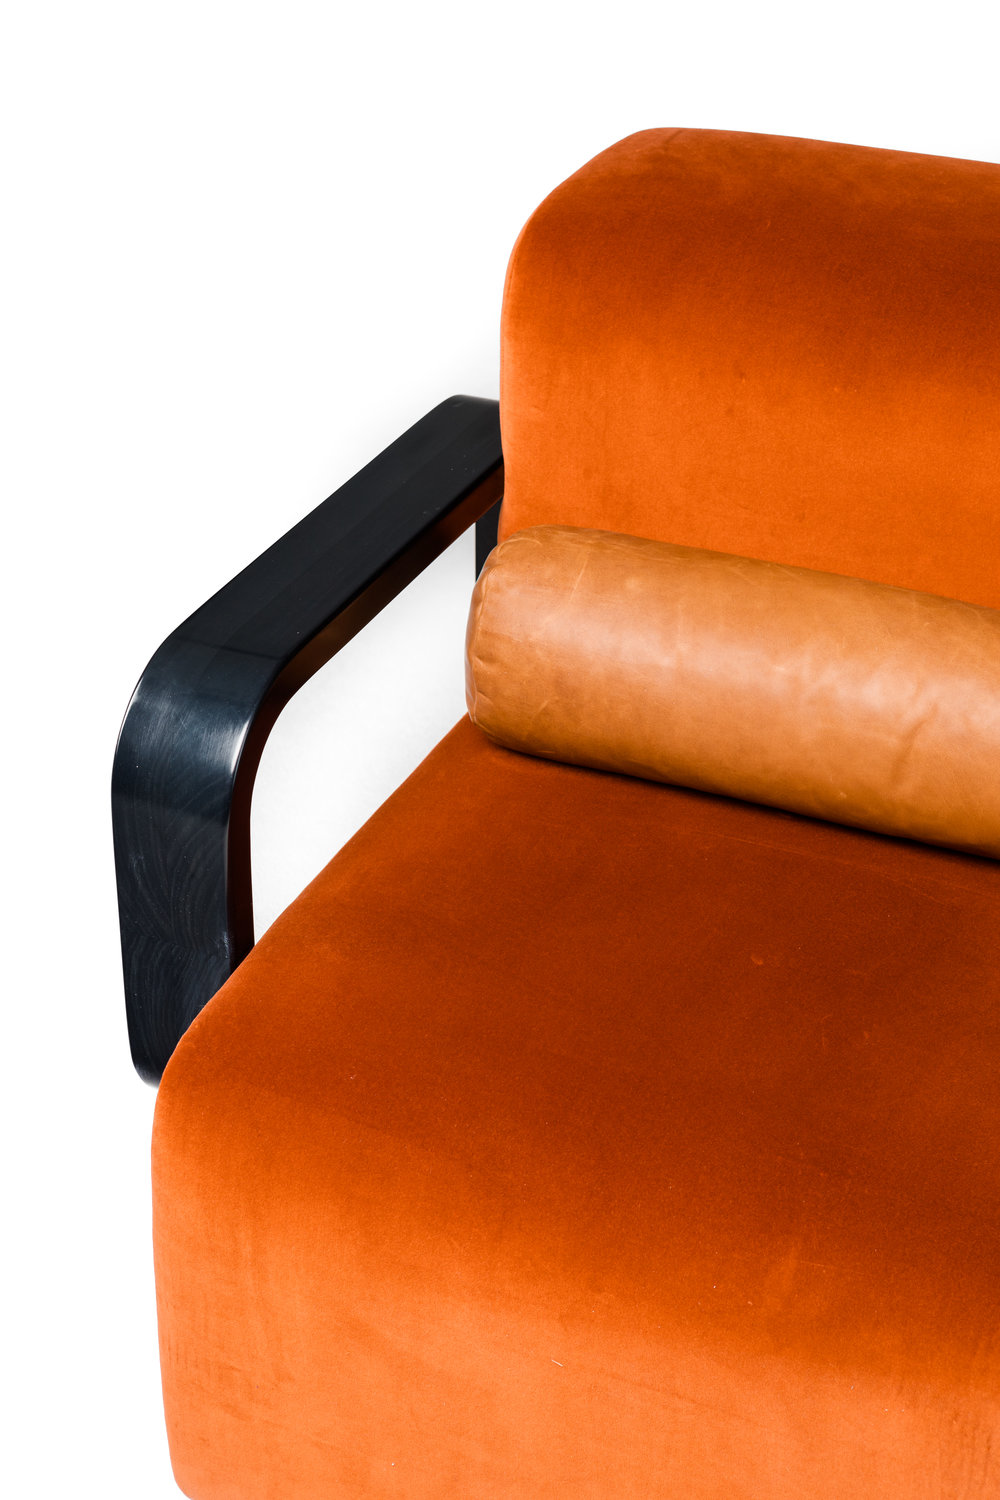 Marie-Burgos-Design.Cayenne-chair.side.close-up.MBcollection.jpg